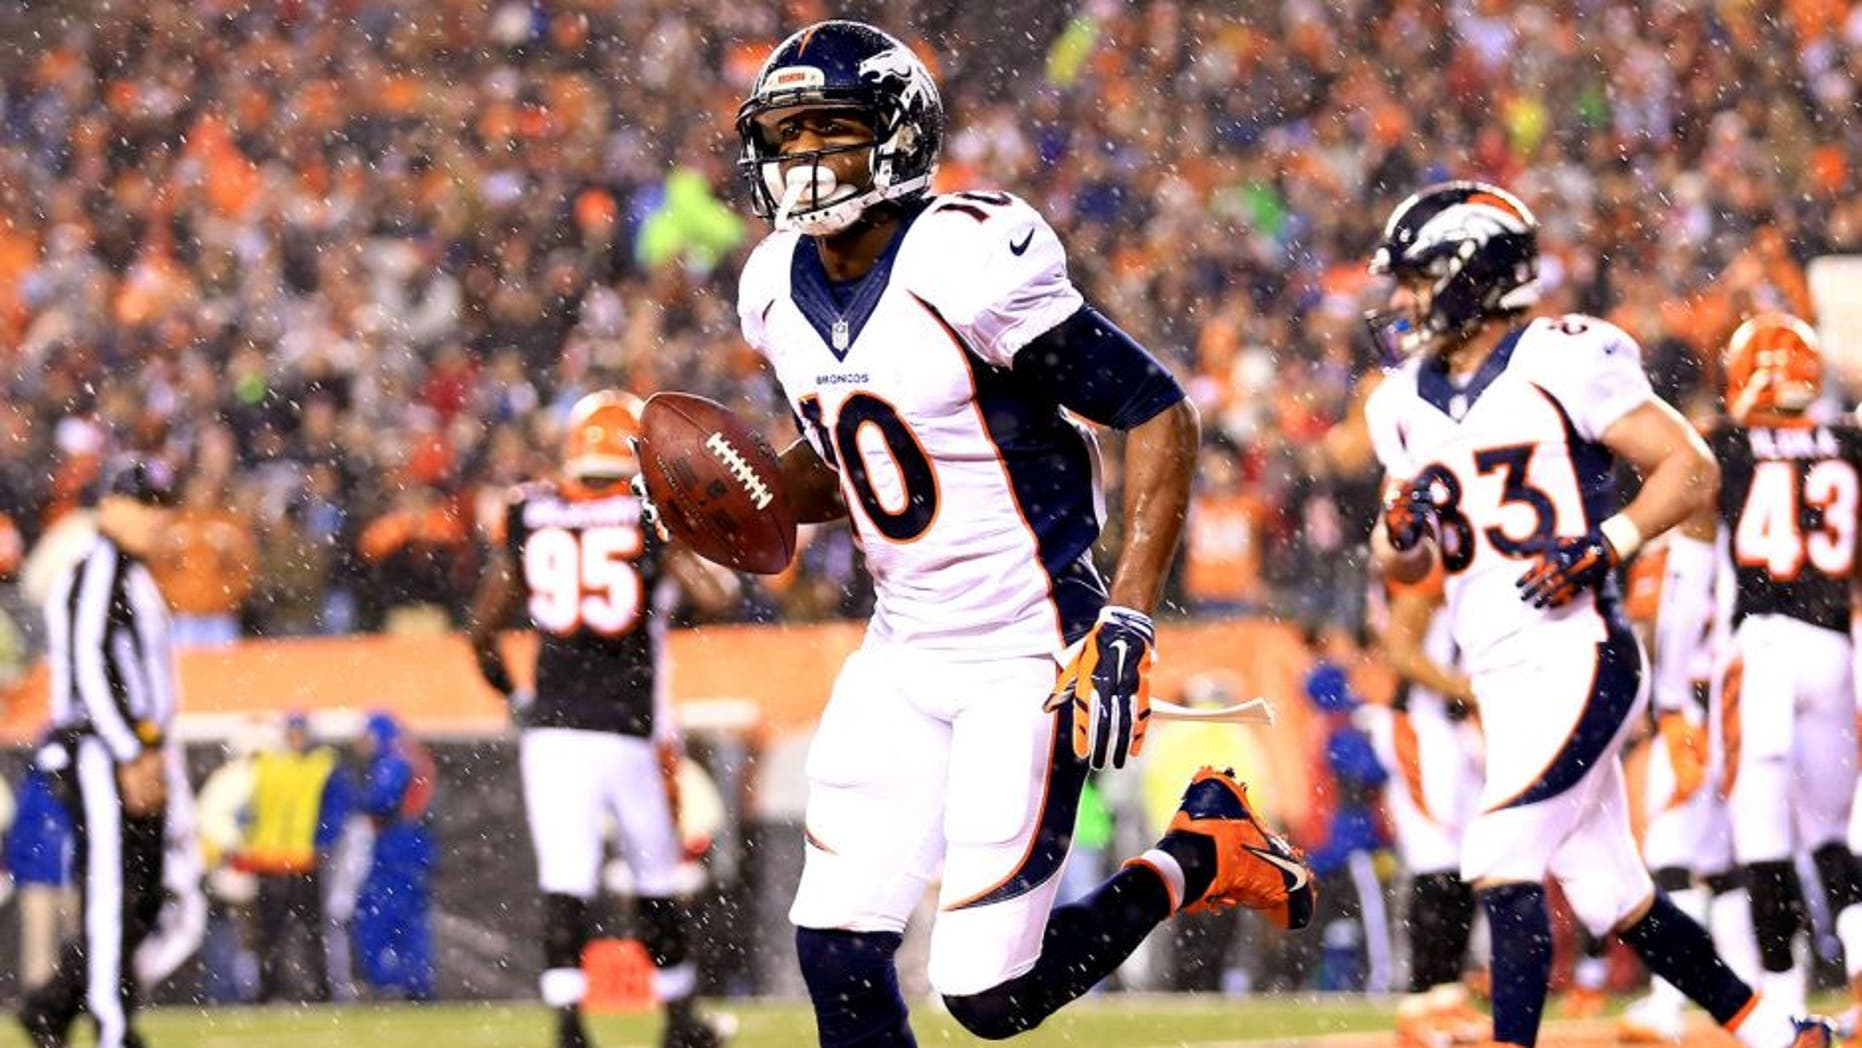 Dec 22, 2014; Cincinnati, OH, USA; Denver Broncos wide receiver Emmanuel Sanders (10) celebrates after catching a pass for a touchdown during the third quarter against the Cincinnati Bengals at Paul Brown Stadium. Mandatory Credit: Andrew Weber-USA TODAY Sports